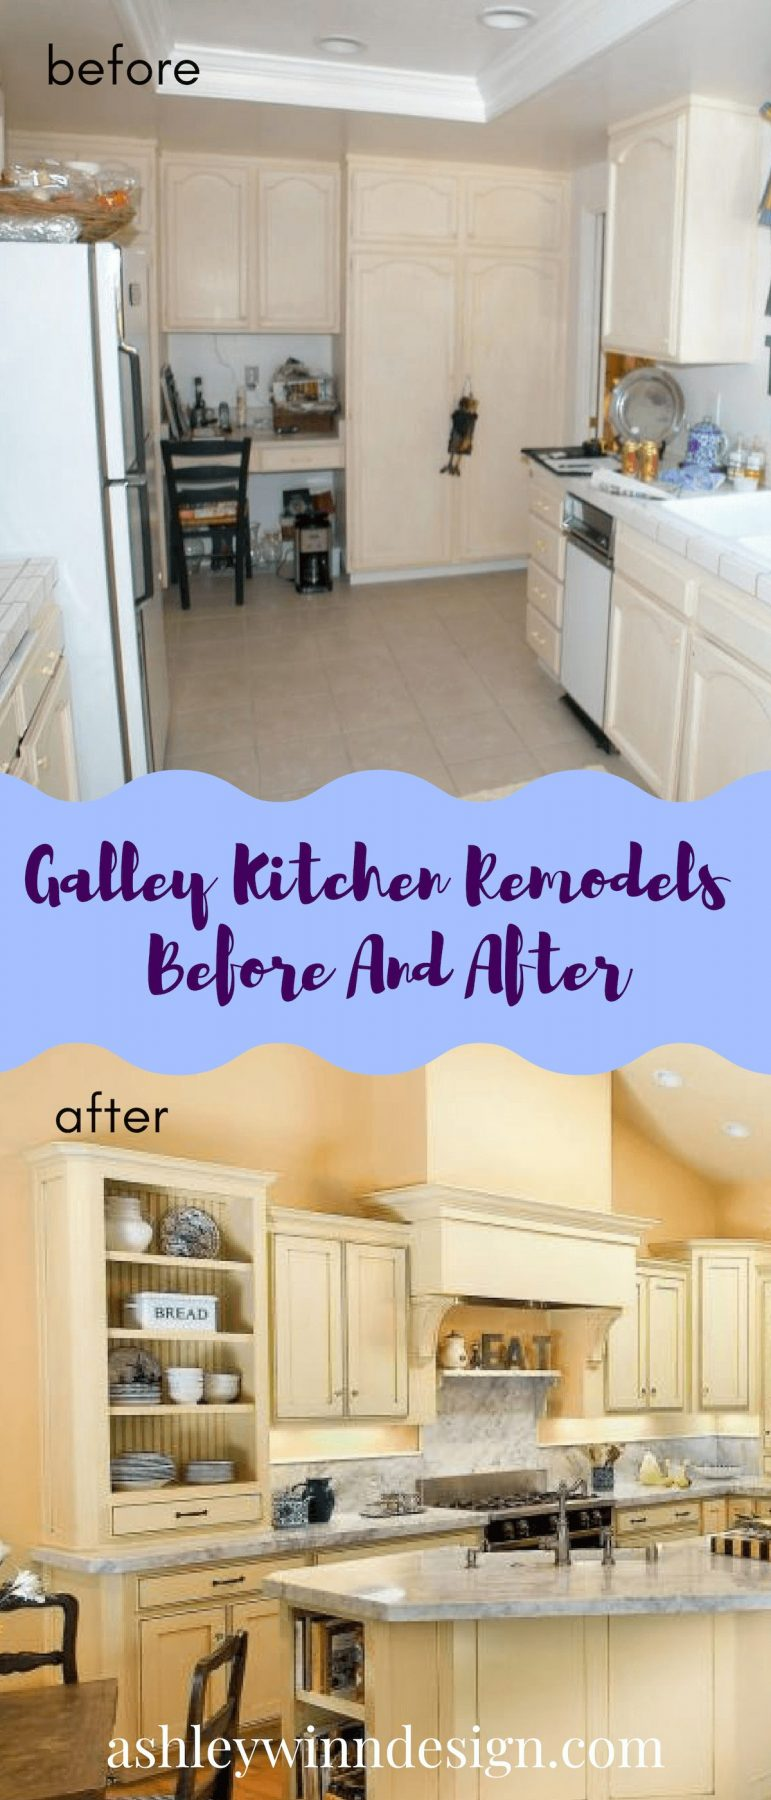 10x10 kitchen remodel